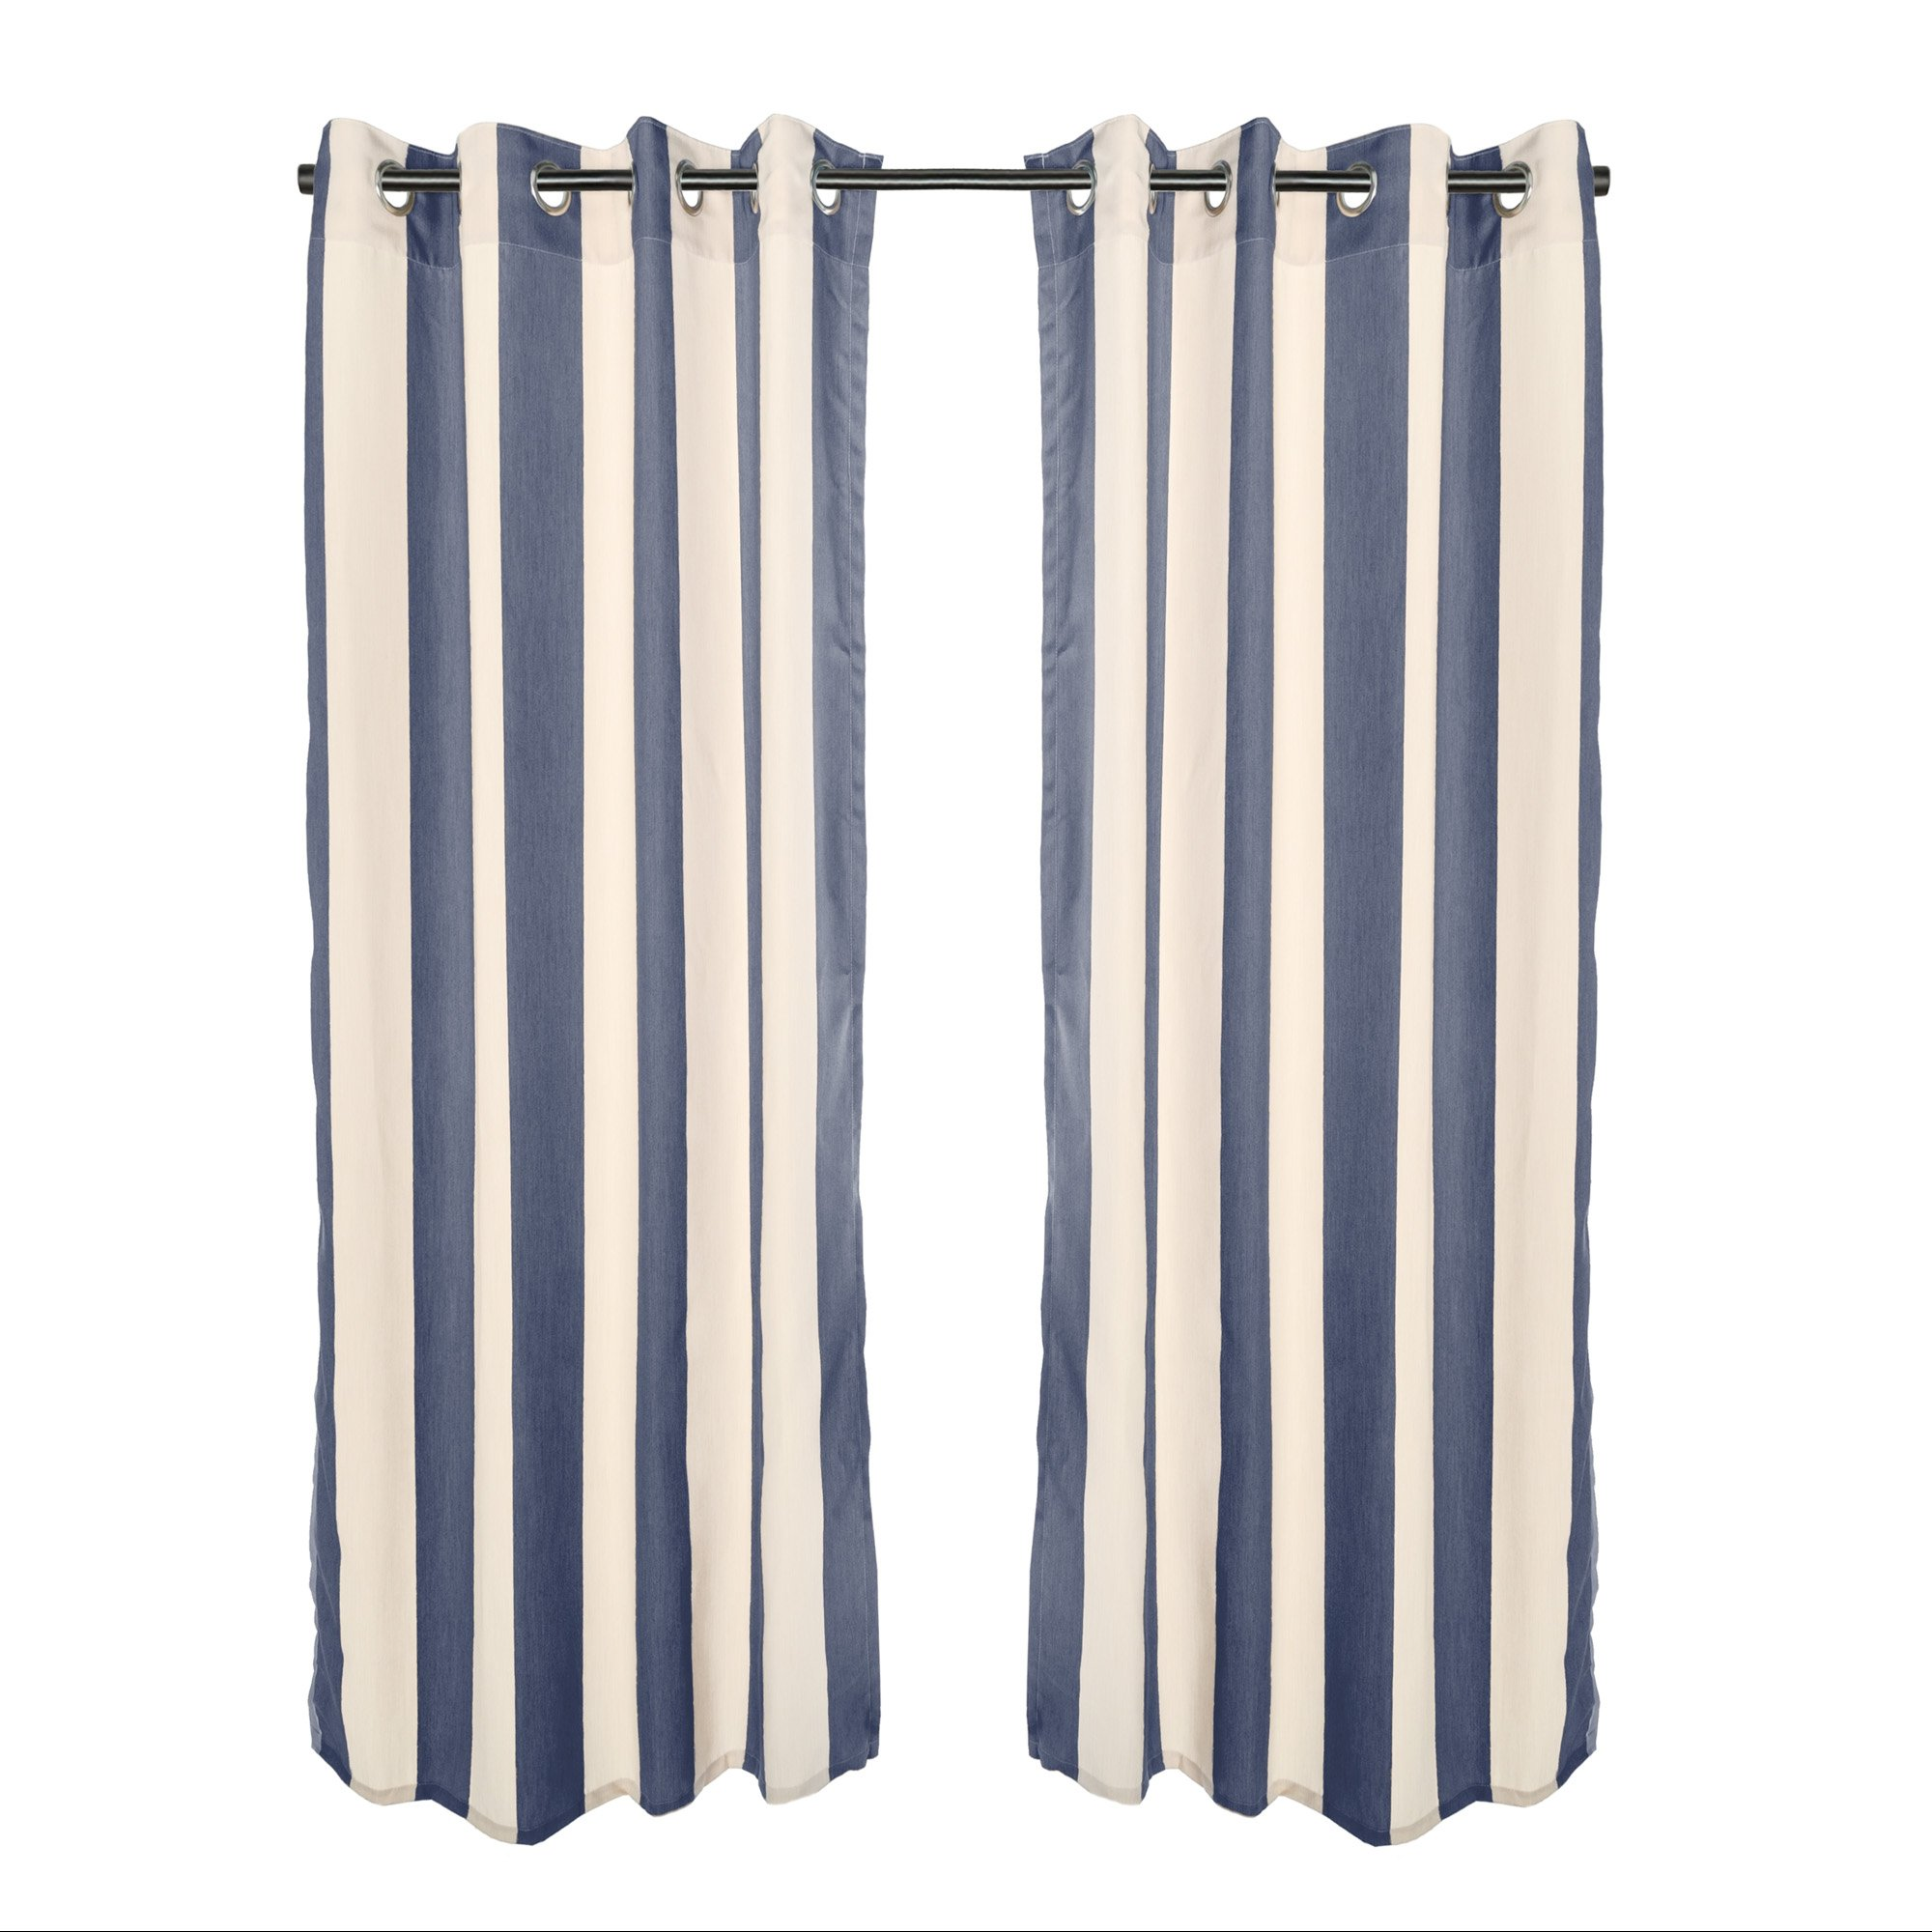 DFOHome Regency Indigo Sunbrella Grommeted Outdoor Curtain - 50'' W x 108'' L